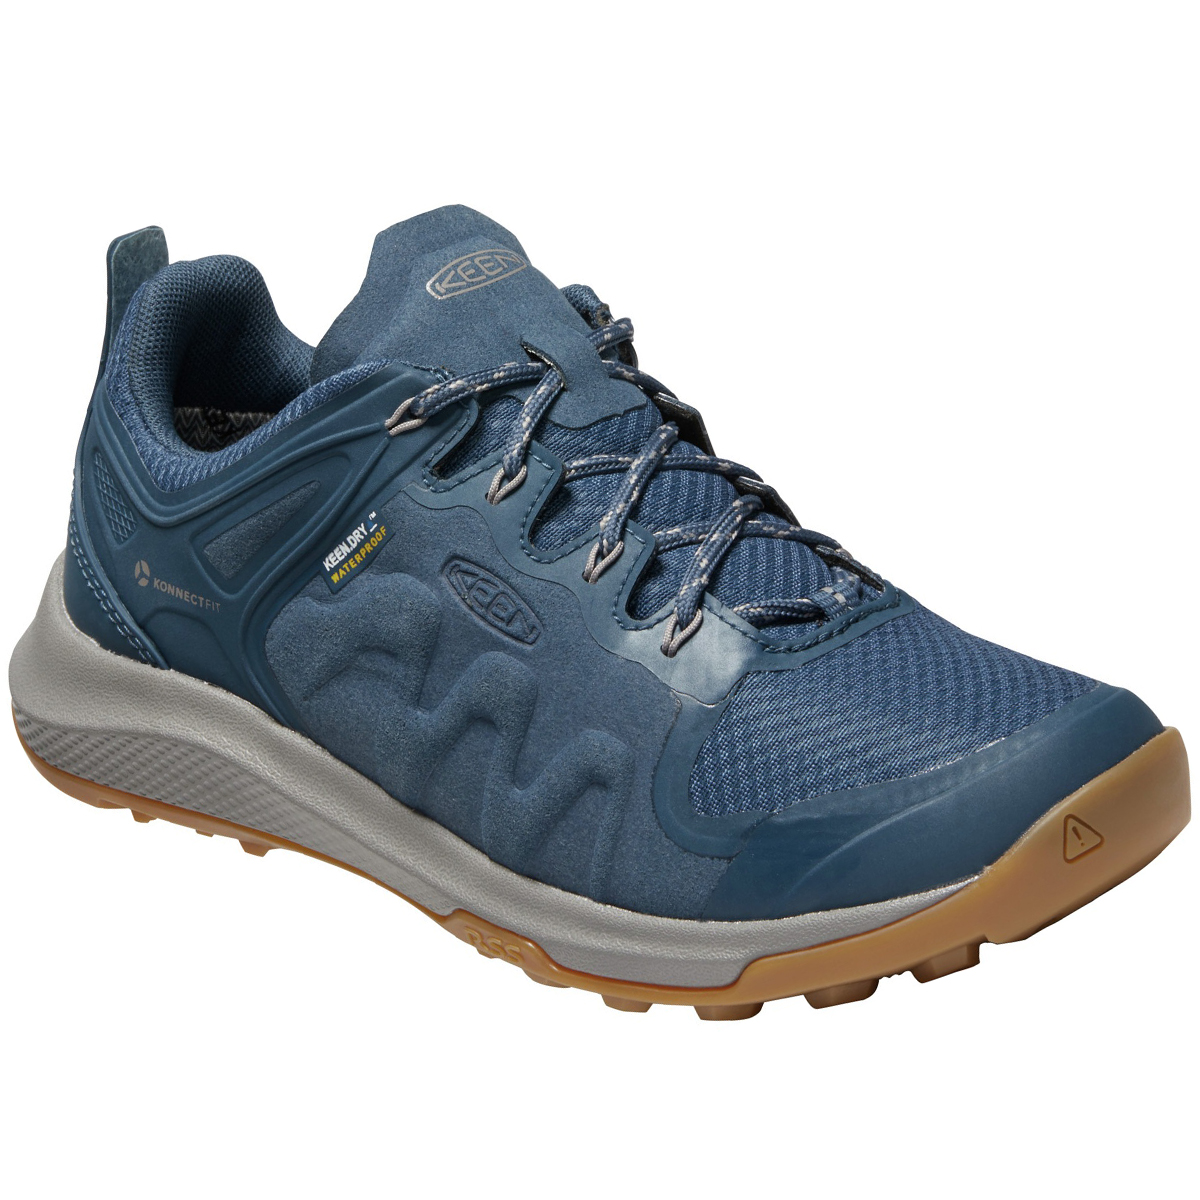 Keen Women's Explore Low Waterproof Mountain Sneakers - Blue, 8